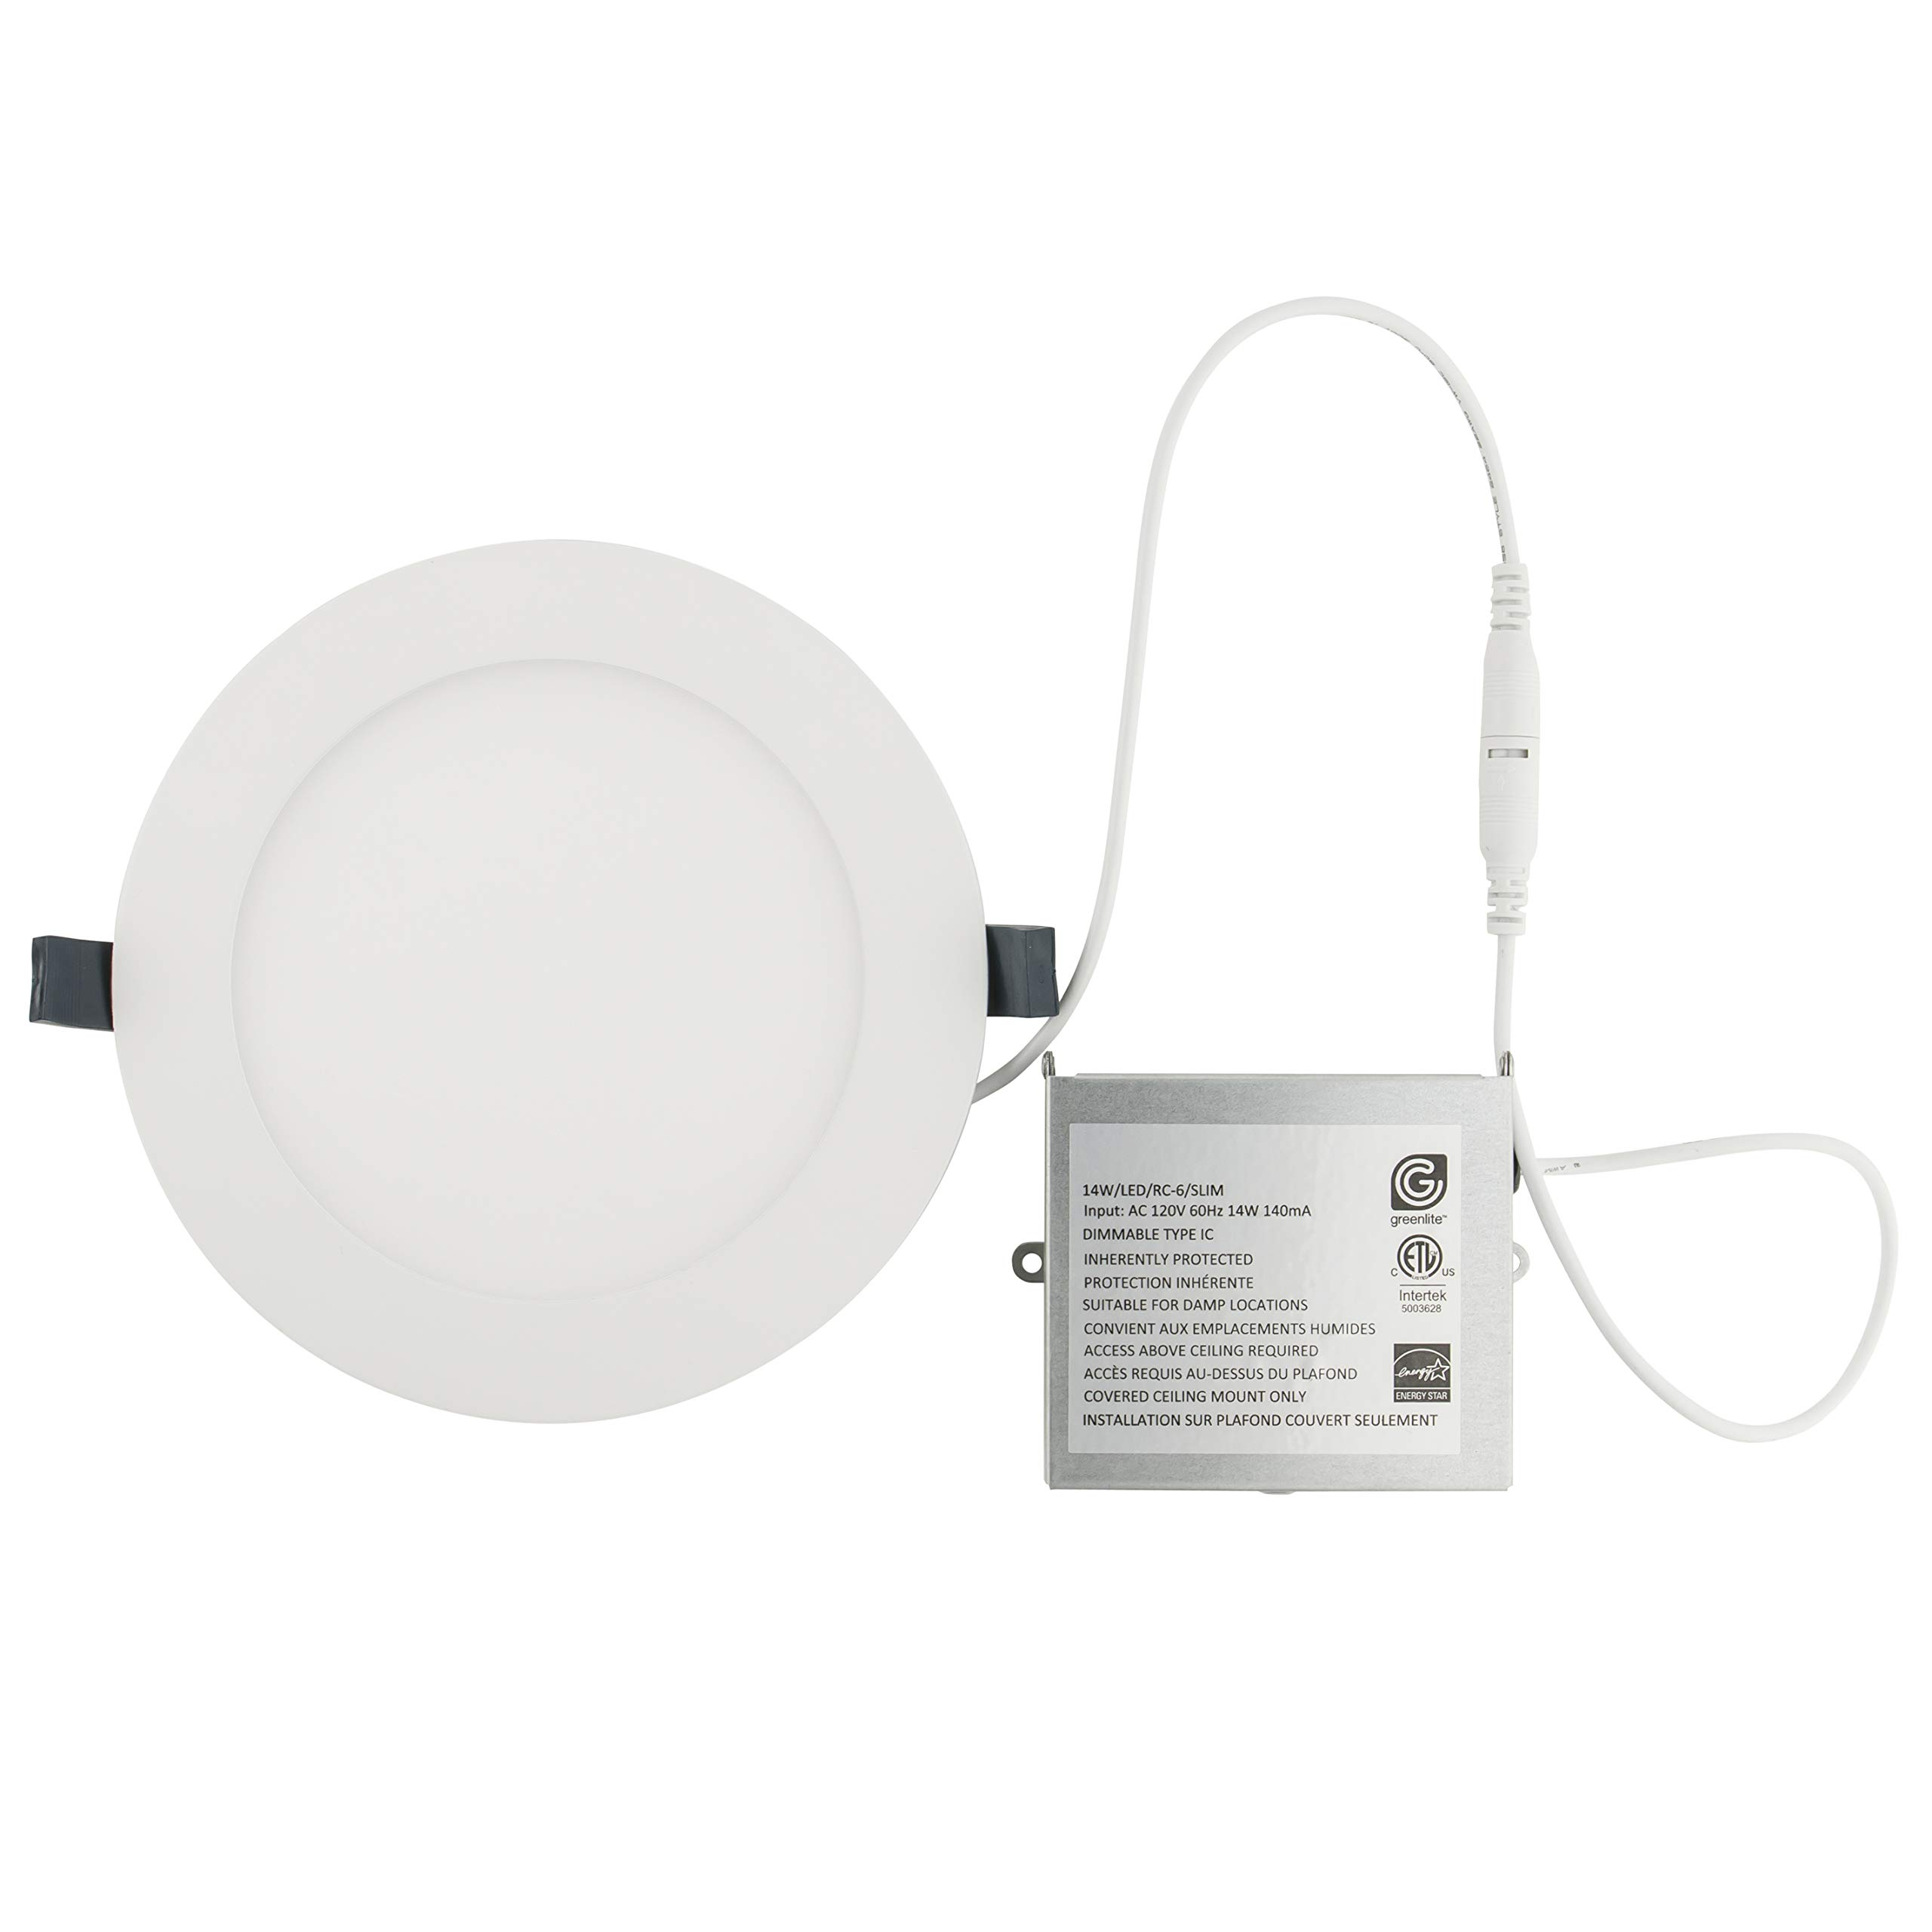 LED Recessed Light Fixture 6 Inch Round with Driver, 3000K Bright White, 14W, 1000 Lumens, 120V, Low Profile, Dimmable, Energy Star and IC Rated, White Trim, 1 Pack